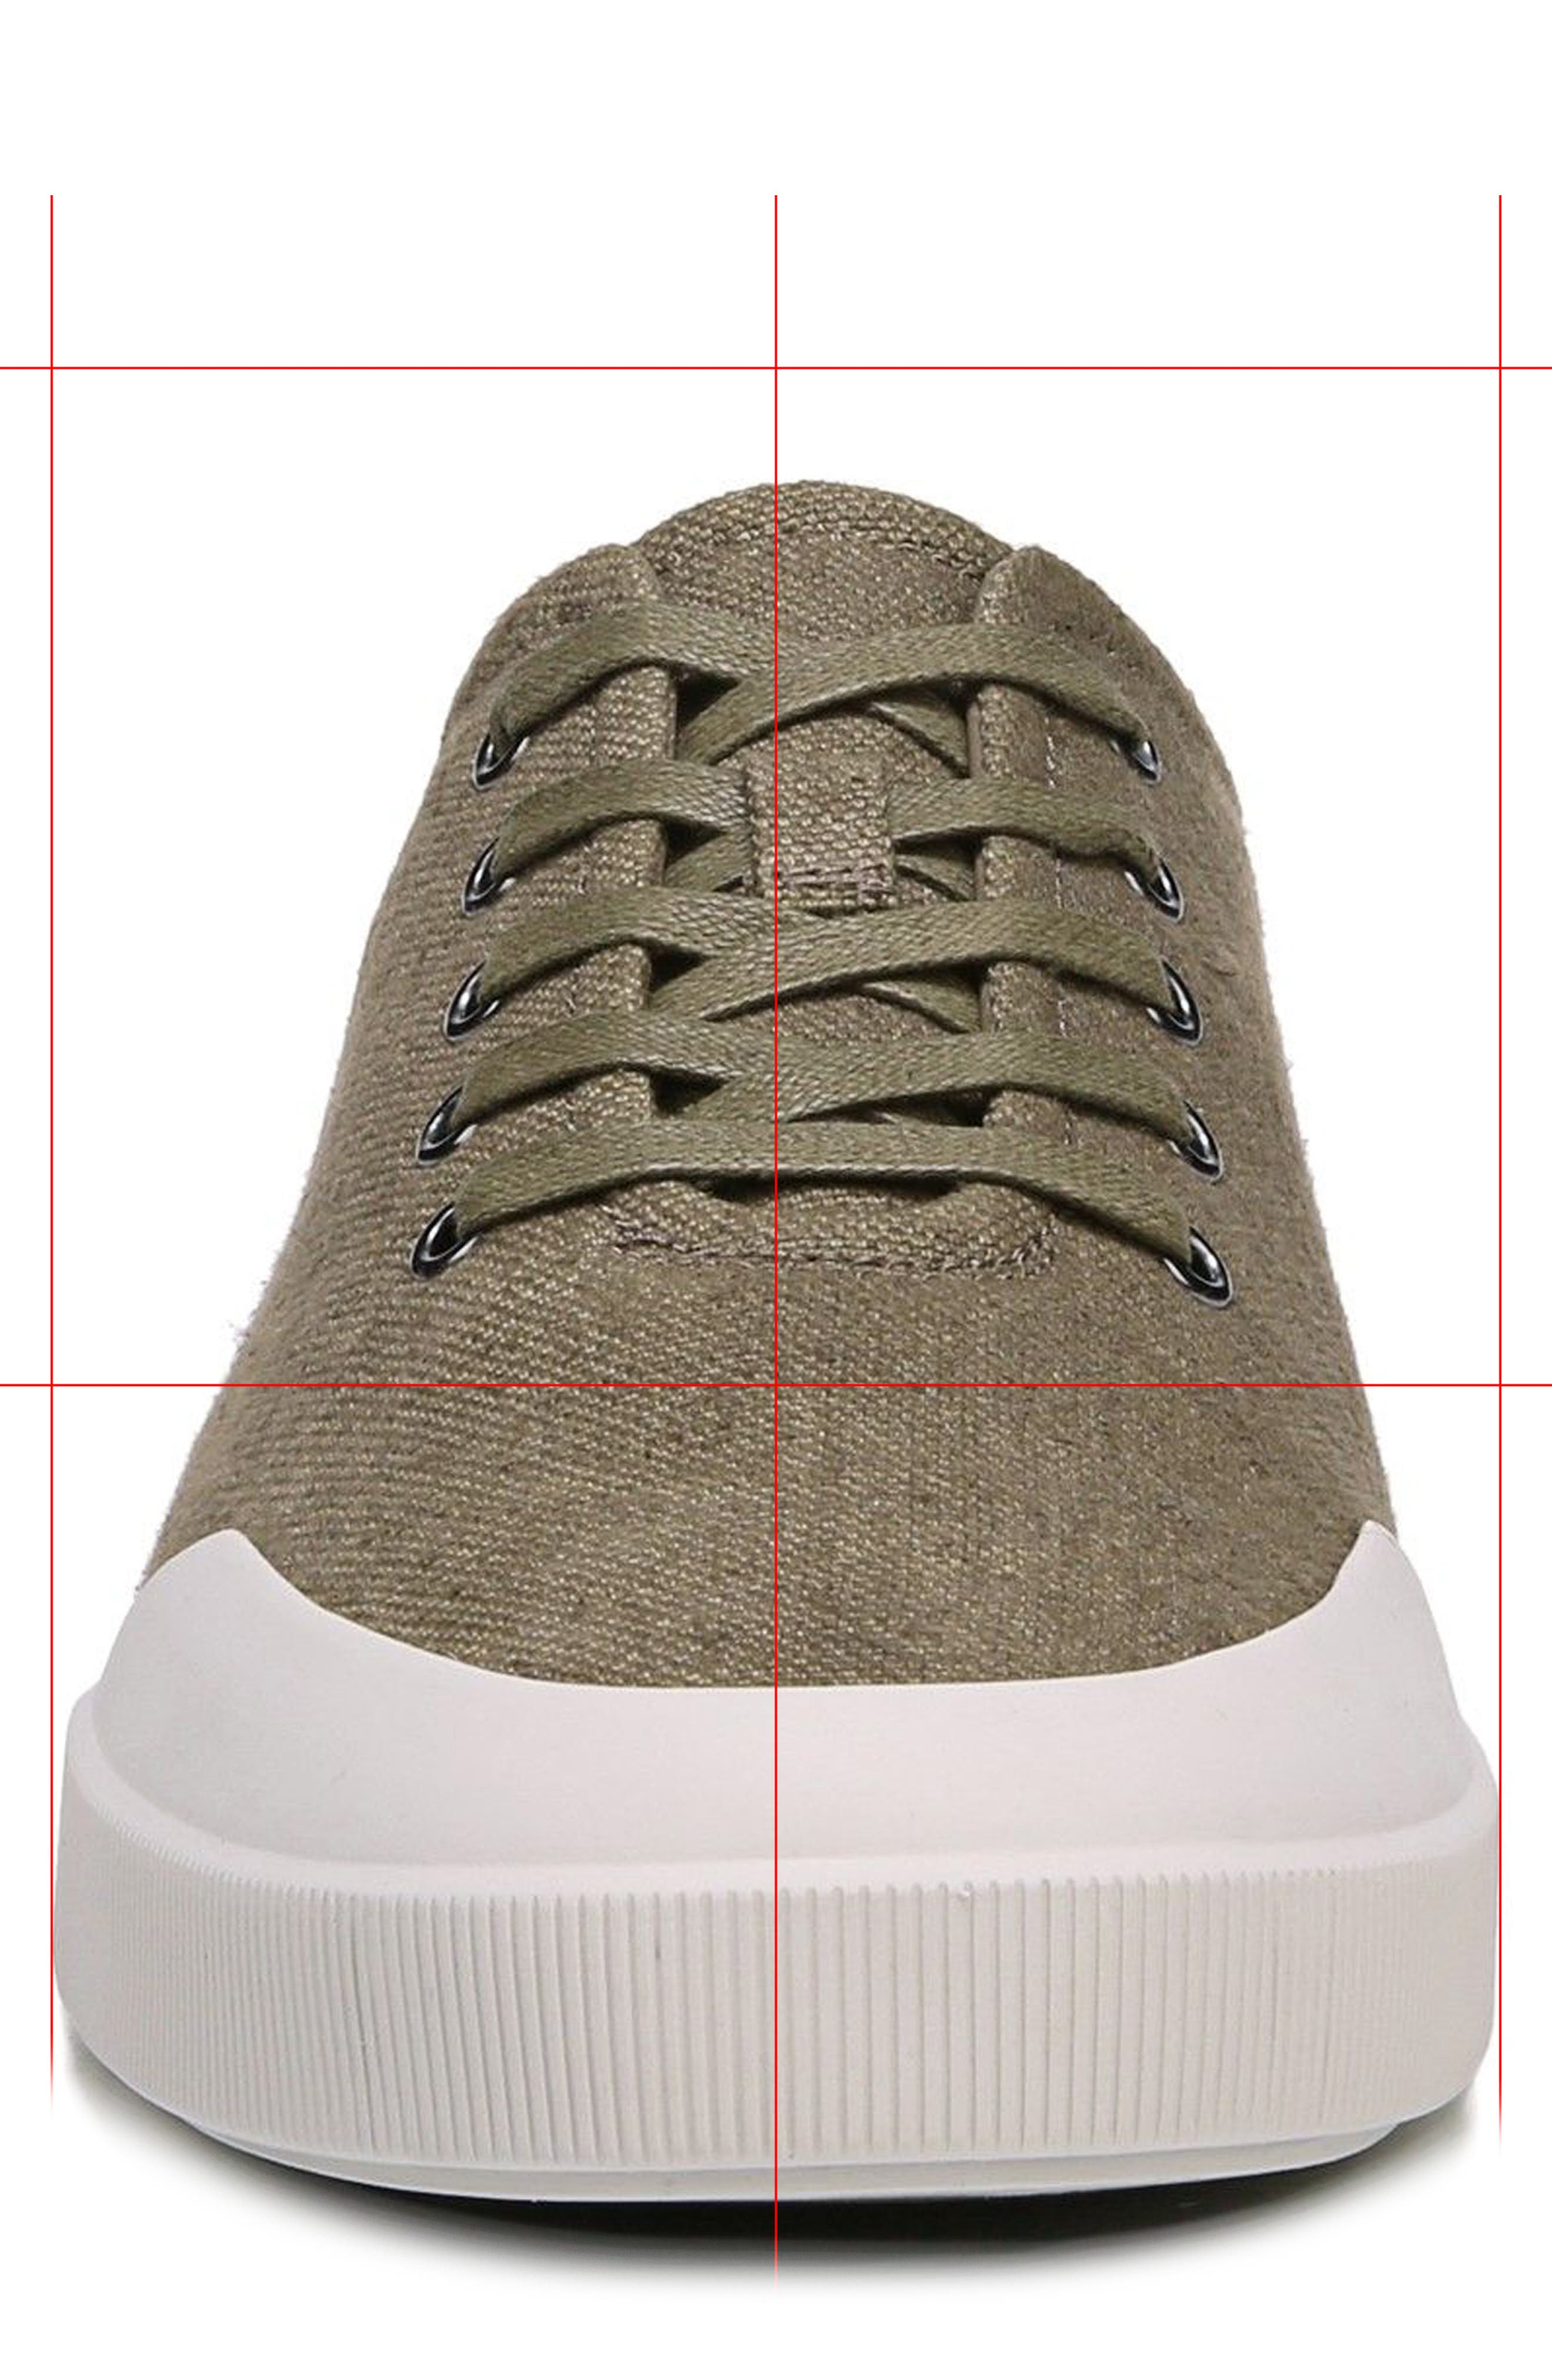 Victor Low Top Sneaker,                             Alternate thumbnail 4, color,                             Flint/ Cuoio